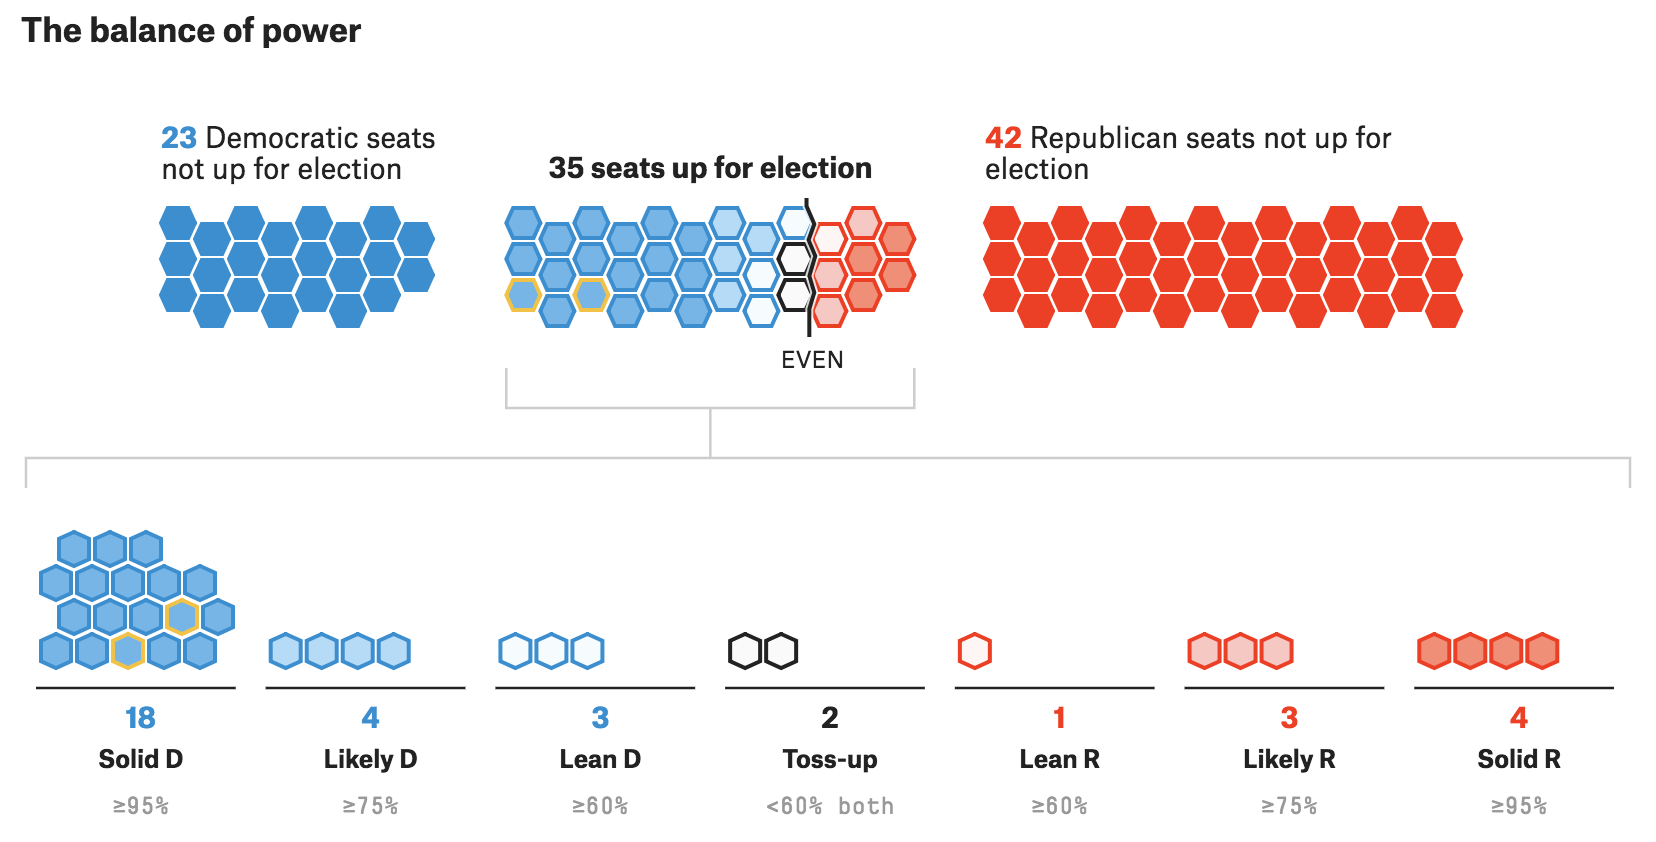 The Senate Forecast from FiveThirtyEight where the Senate breakdown is shown with the probability of Republicans or Democrats winning each seat.